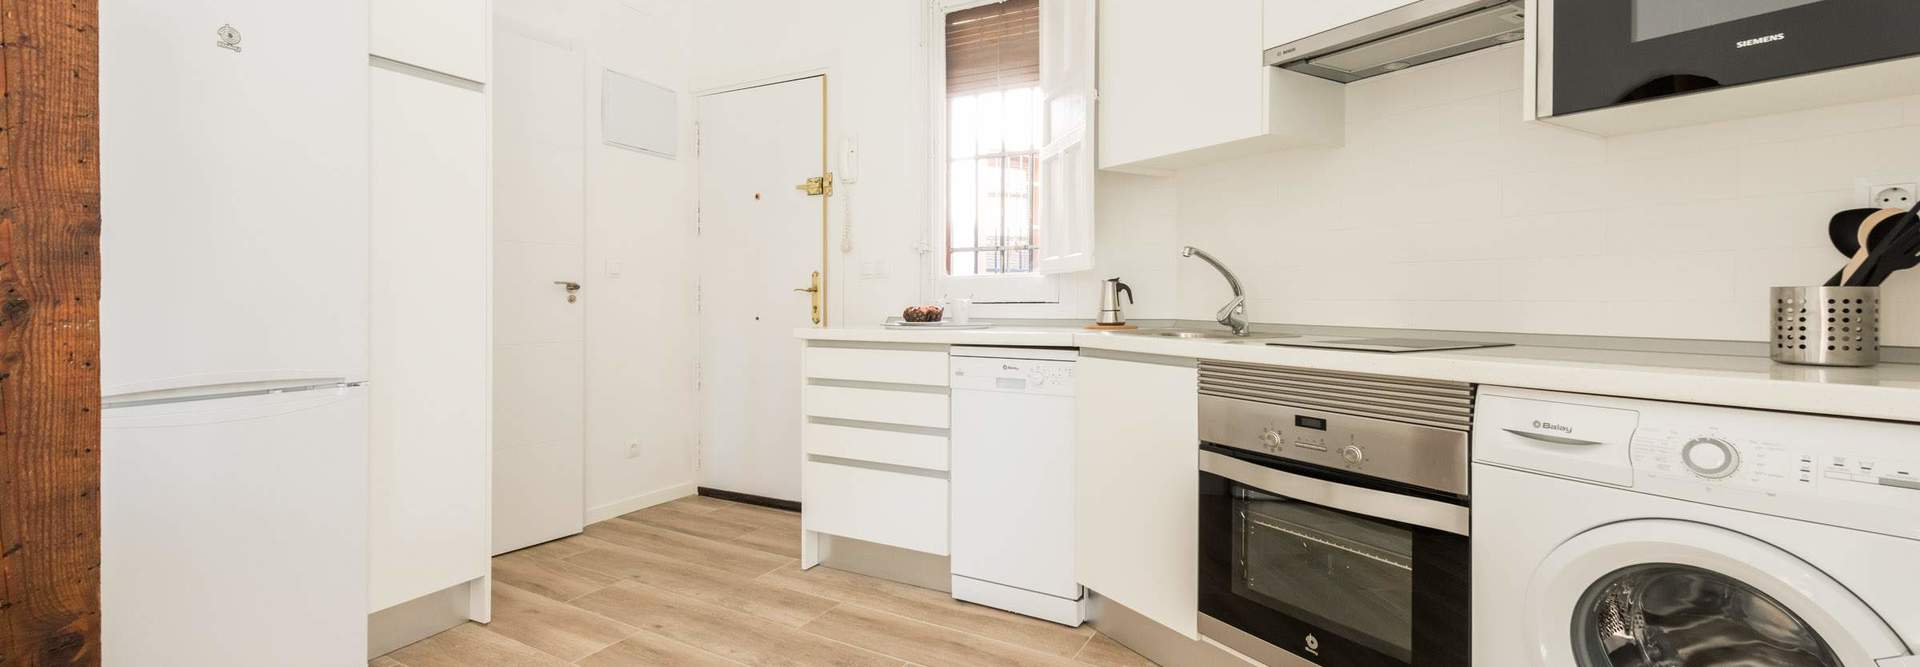 Home alquiler apartamento madrid centro mad4rent  2